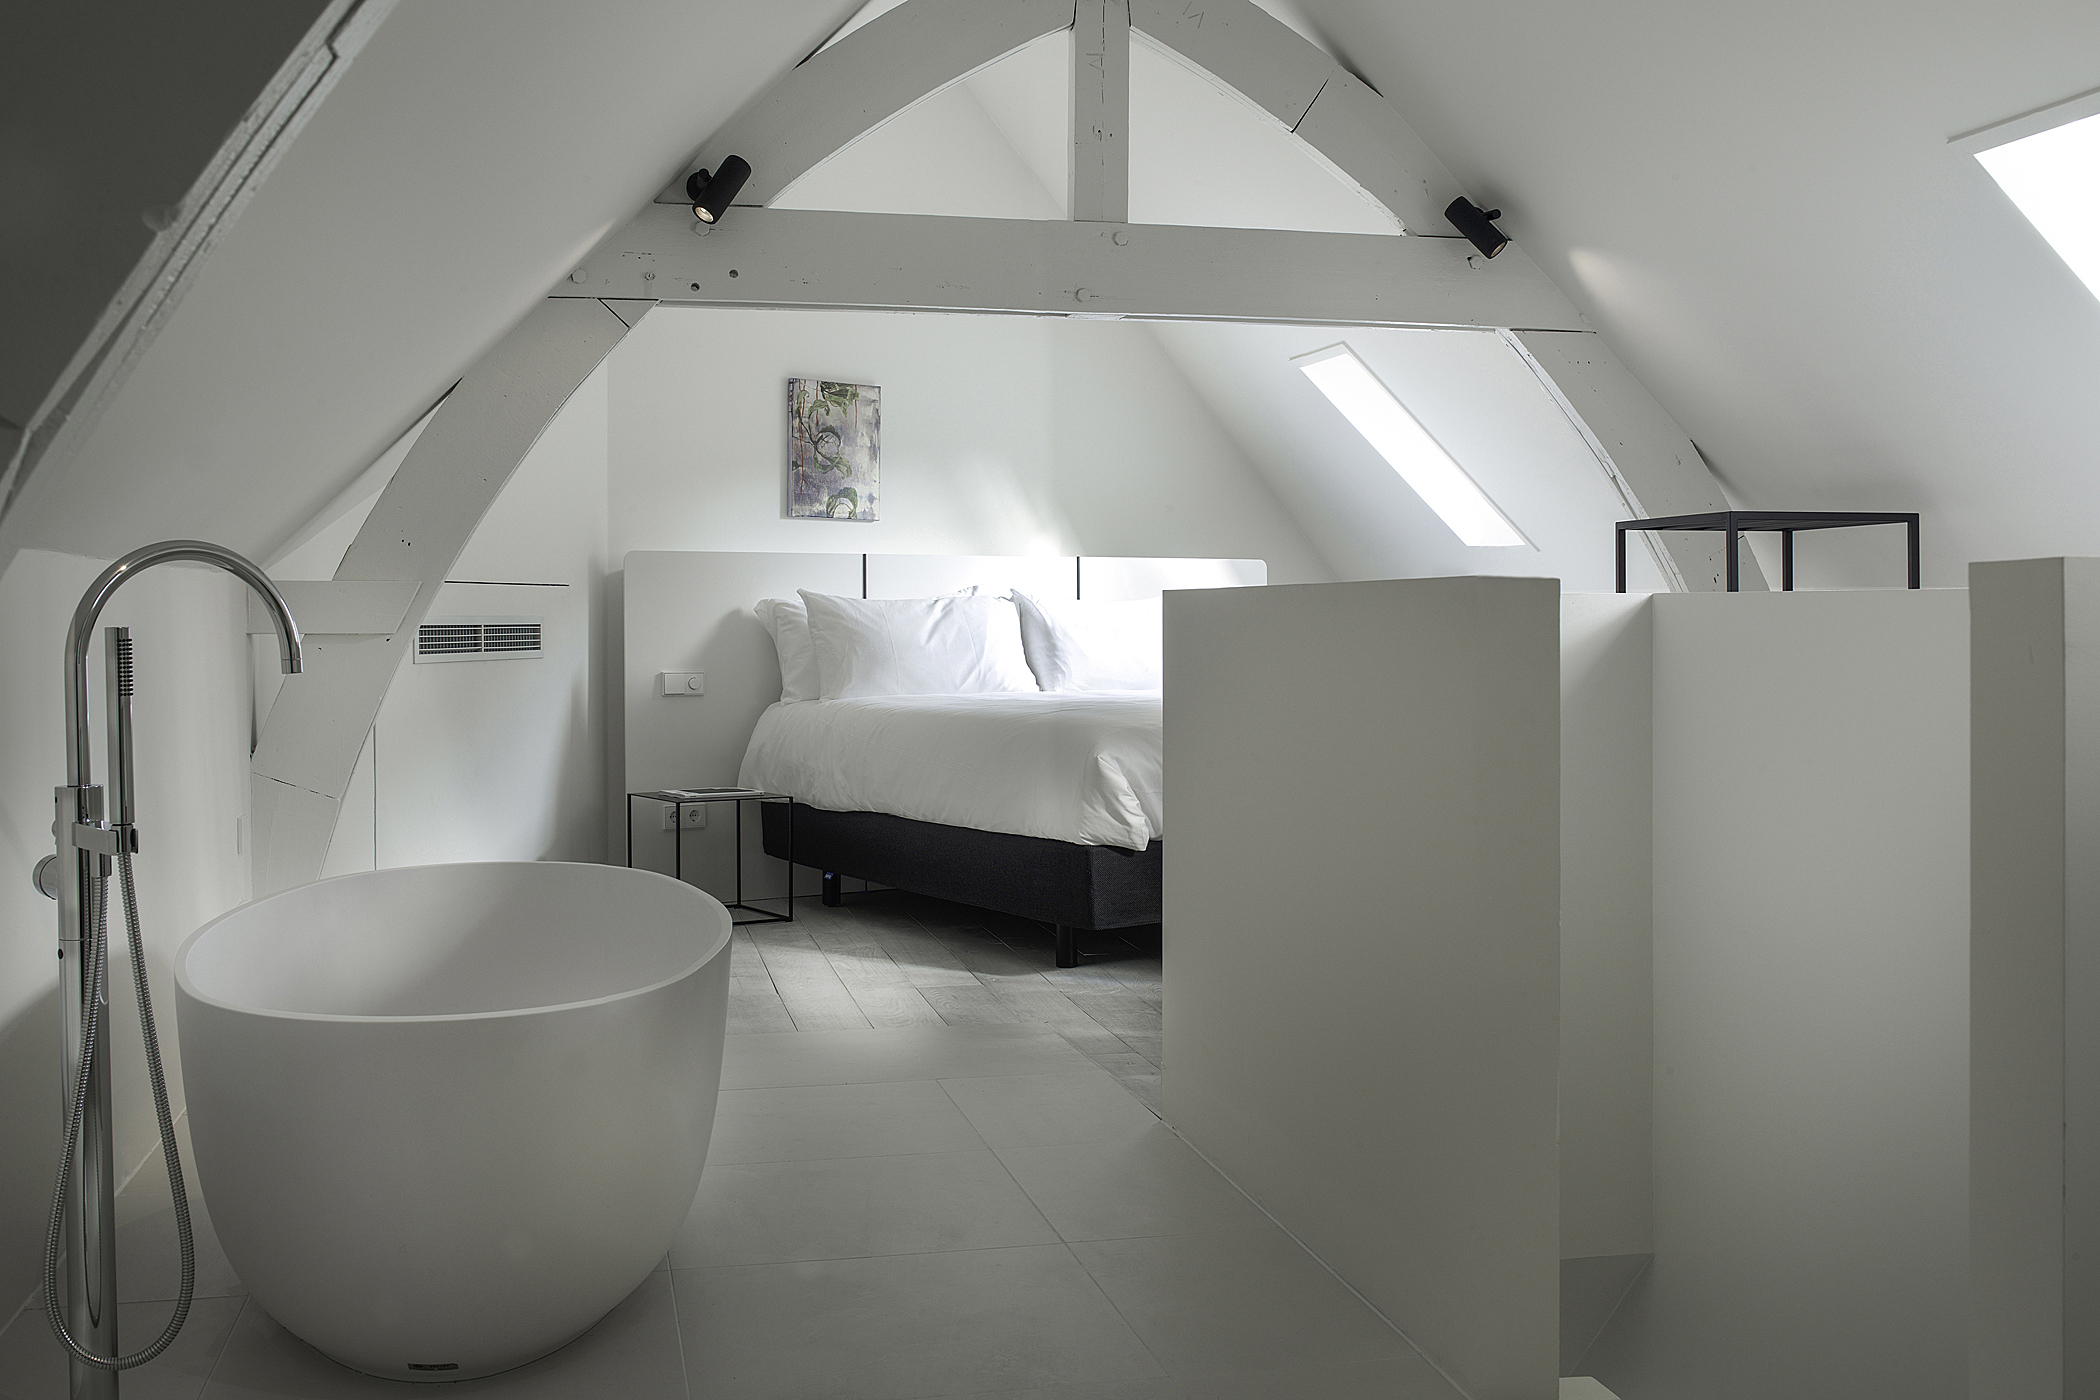 Kazerne Corner Duplex Bed and Bathroom Image Patrick Meis